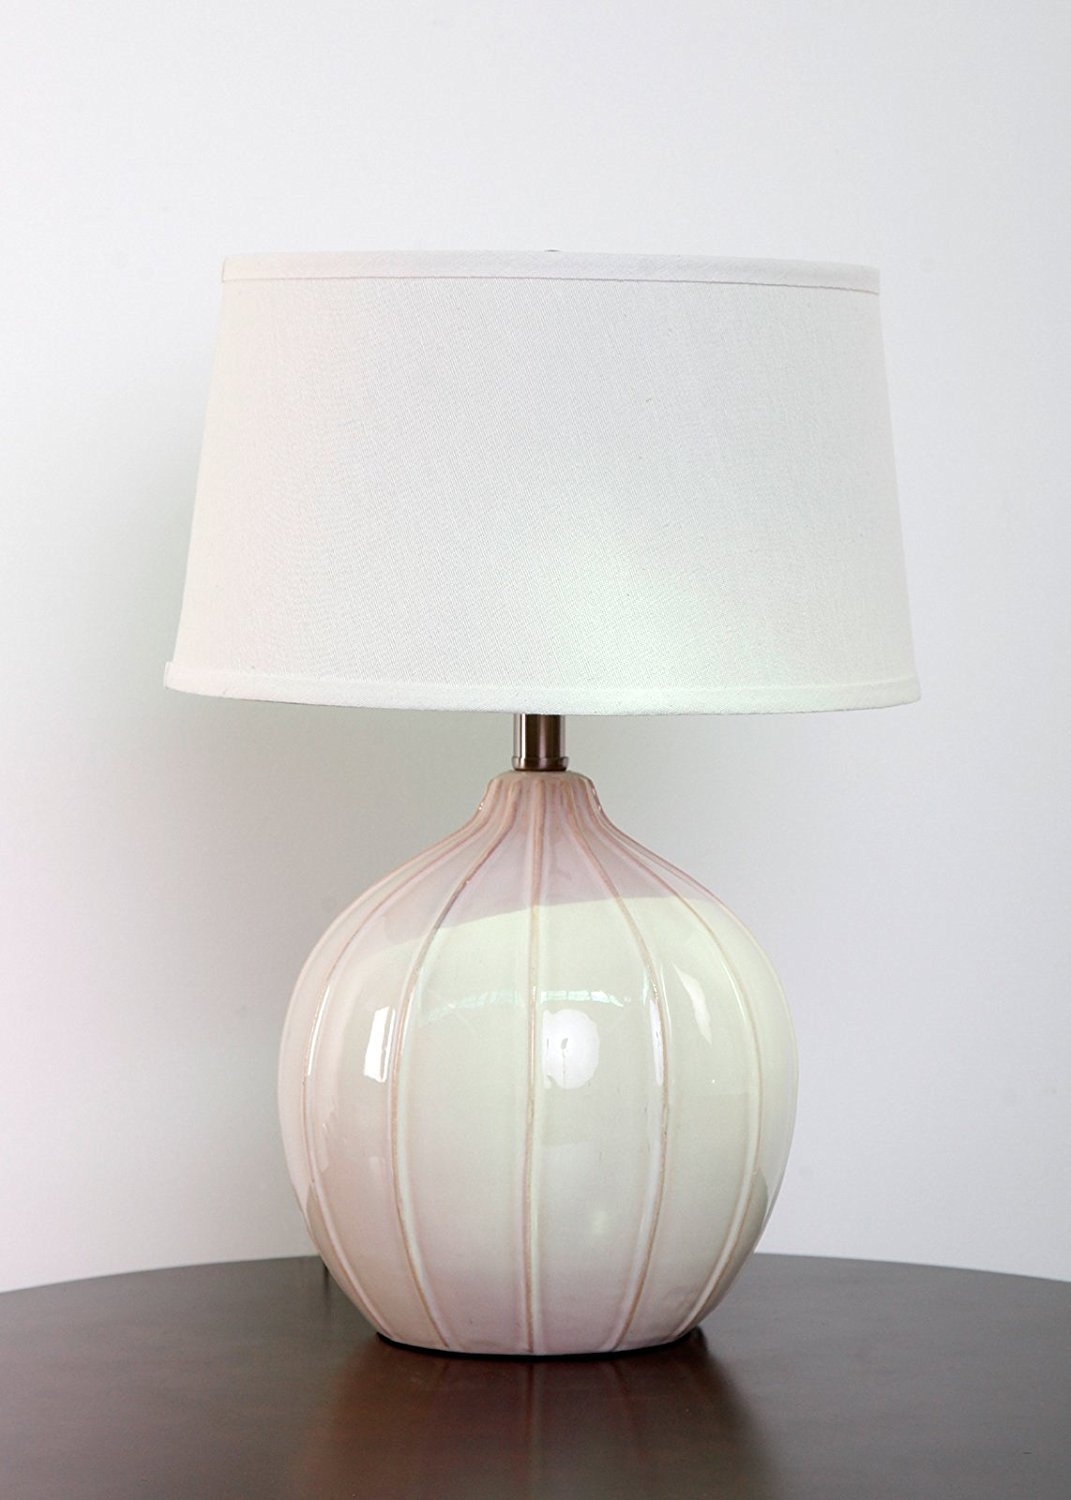 Highlands Antique White Ceramic Table Lamp with Natural Drum Hardback Shade